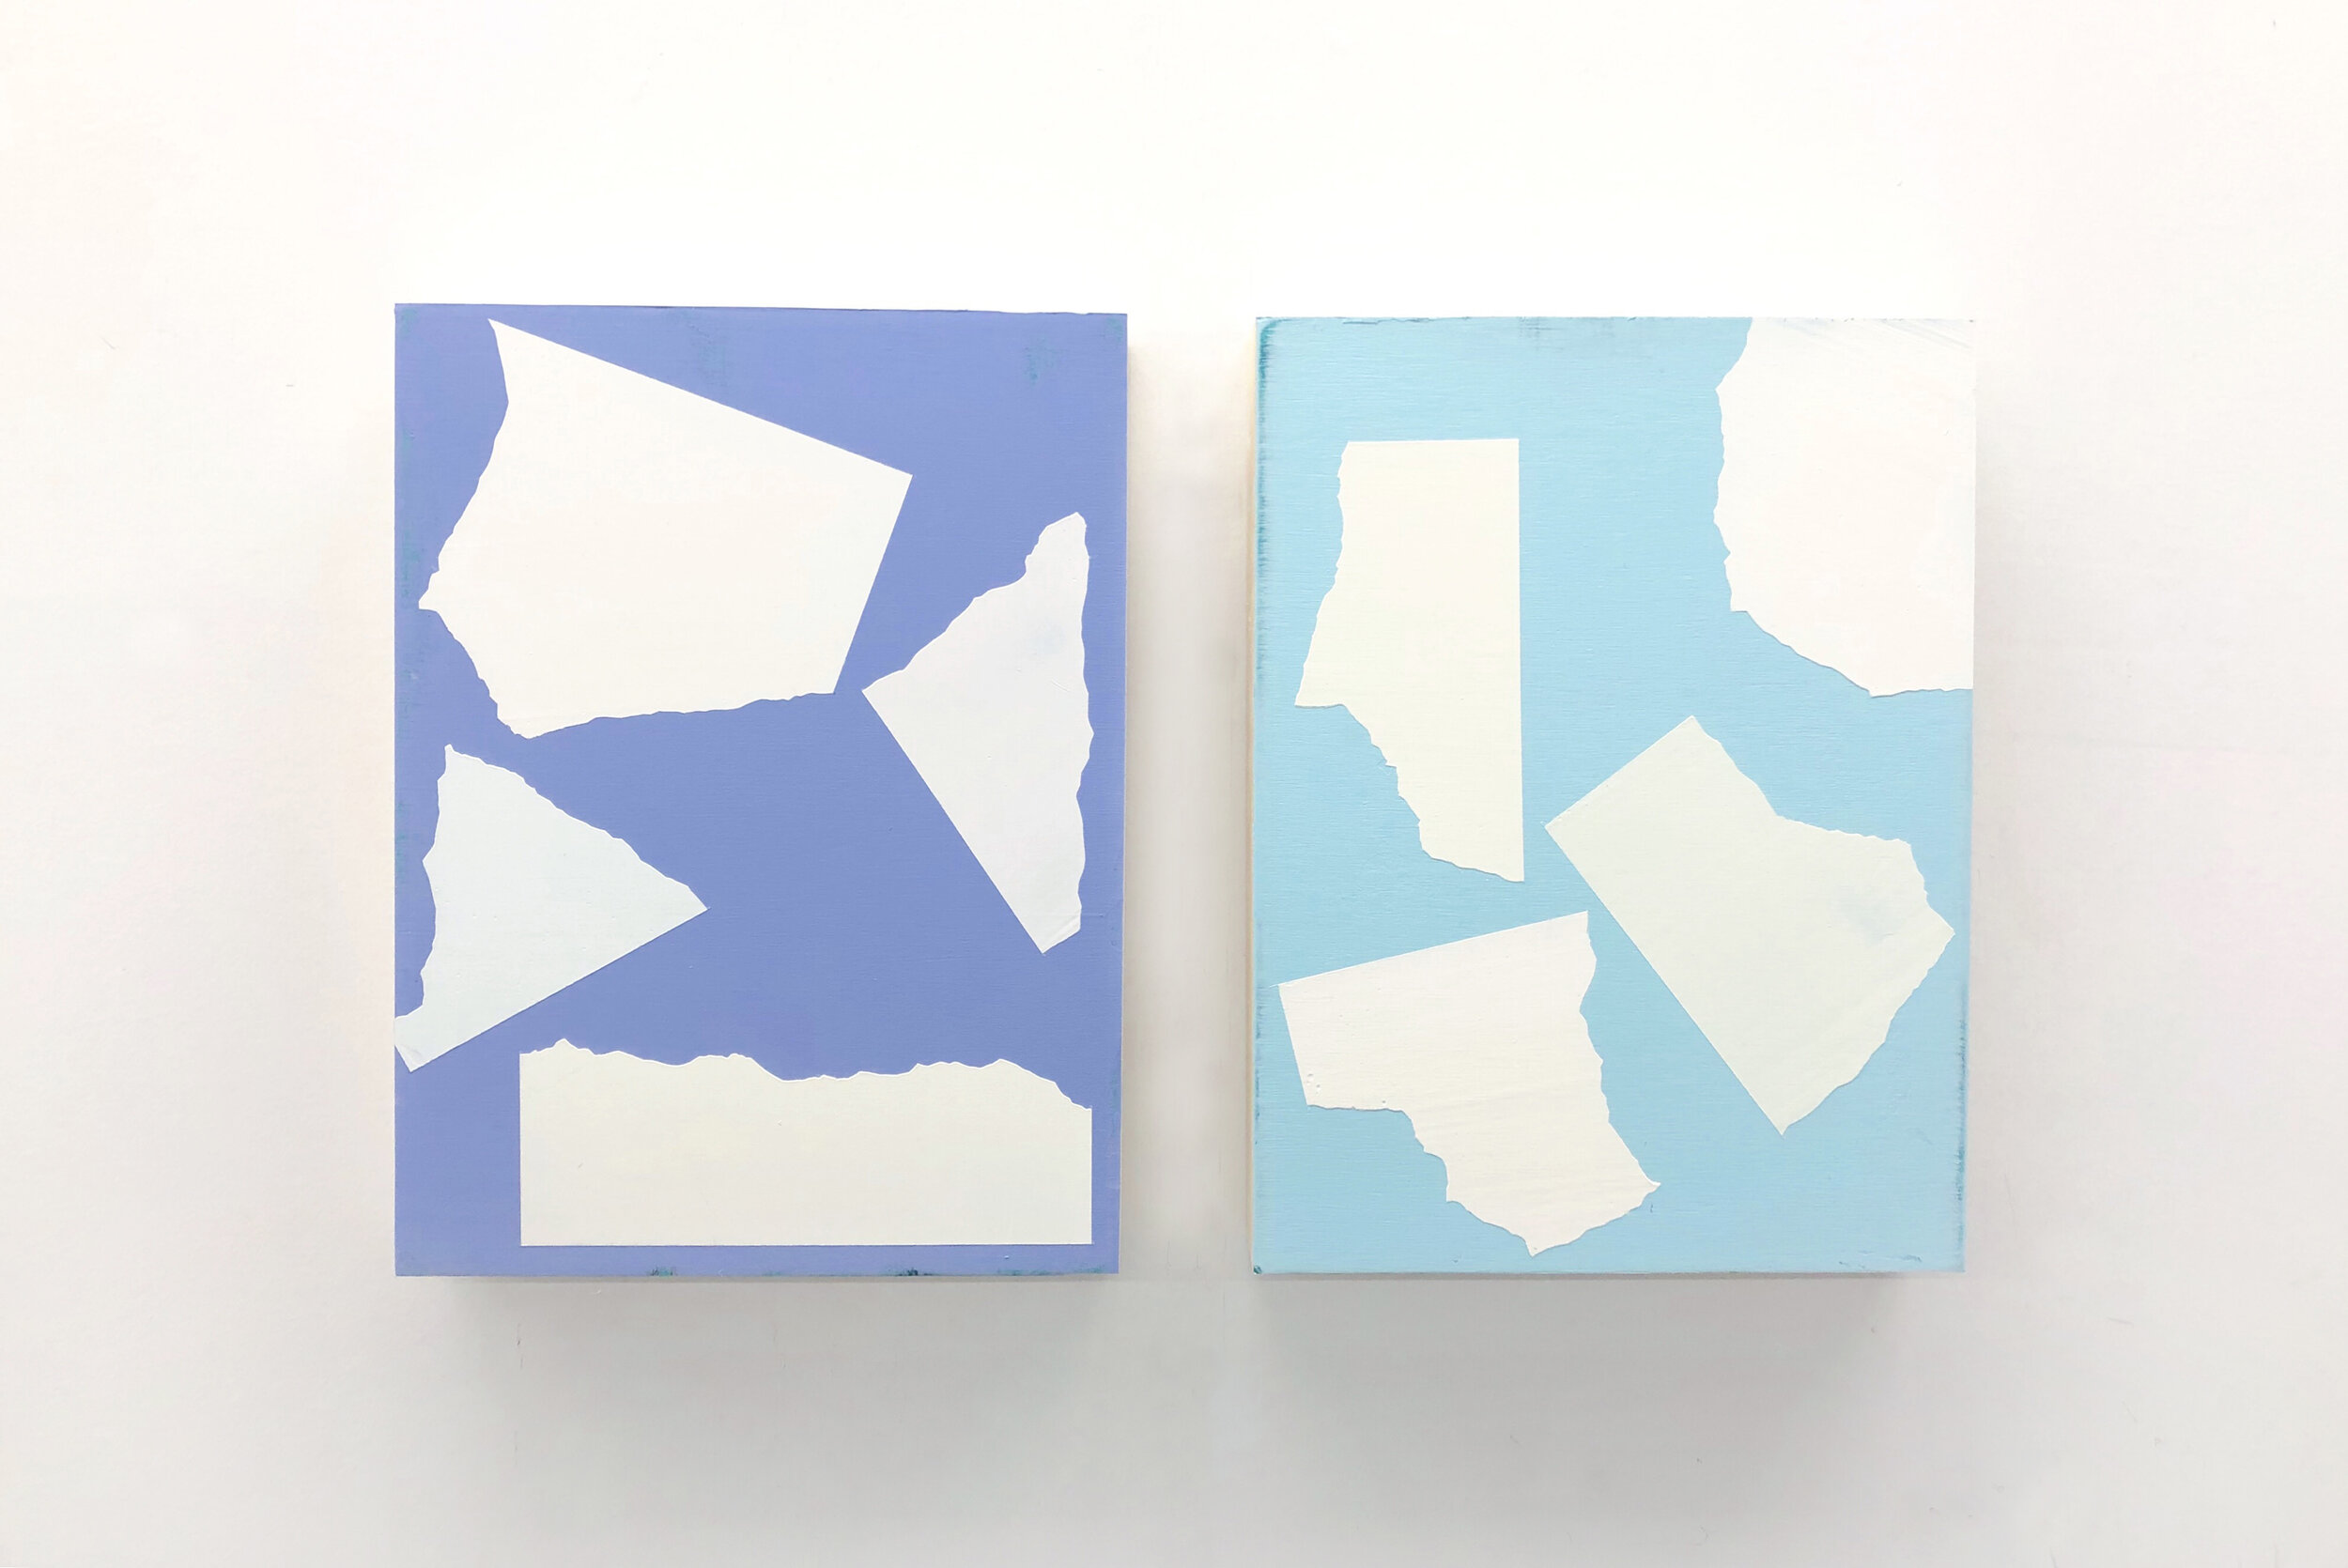 """A Piece of 7"""" by 7"""" Paper Torn Apart  Series 12"""" x 9"""" each Acrylic on wood panel 2019"""